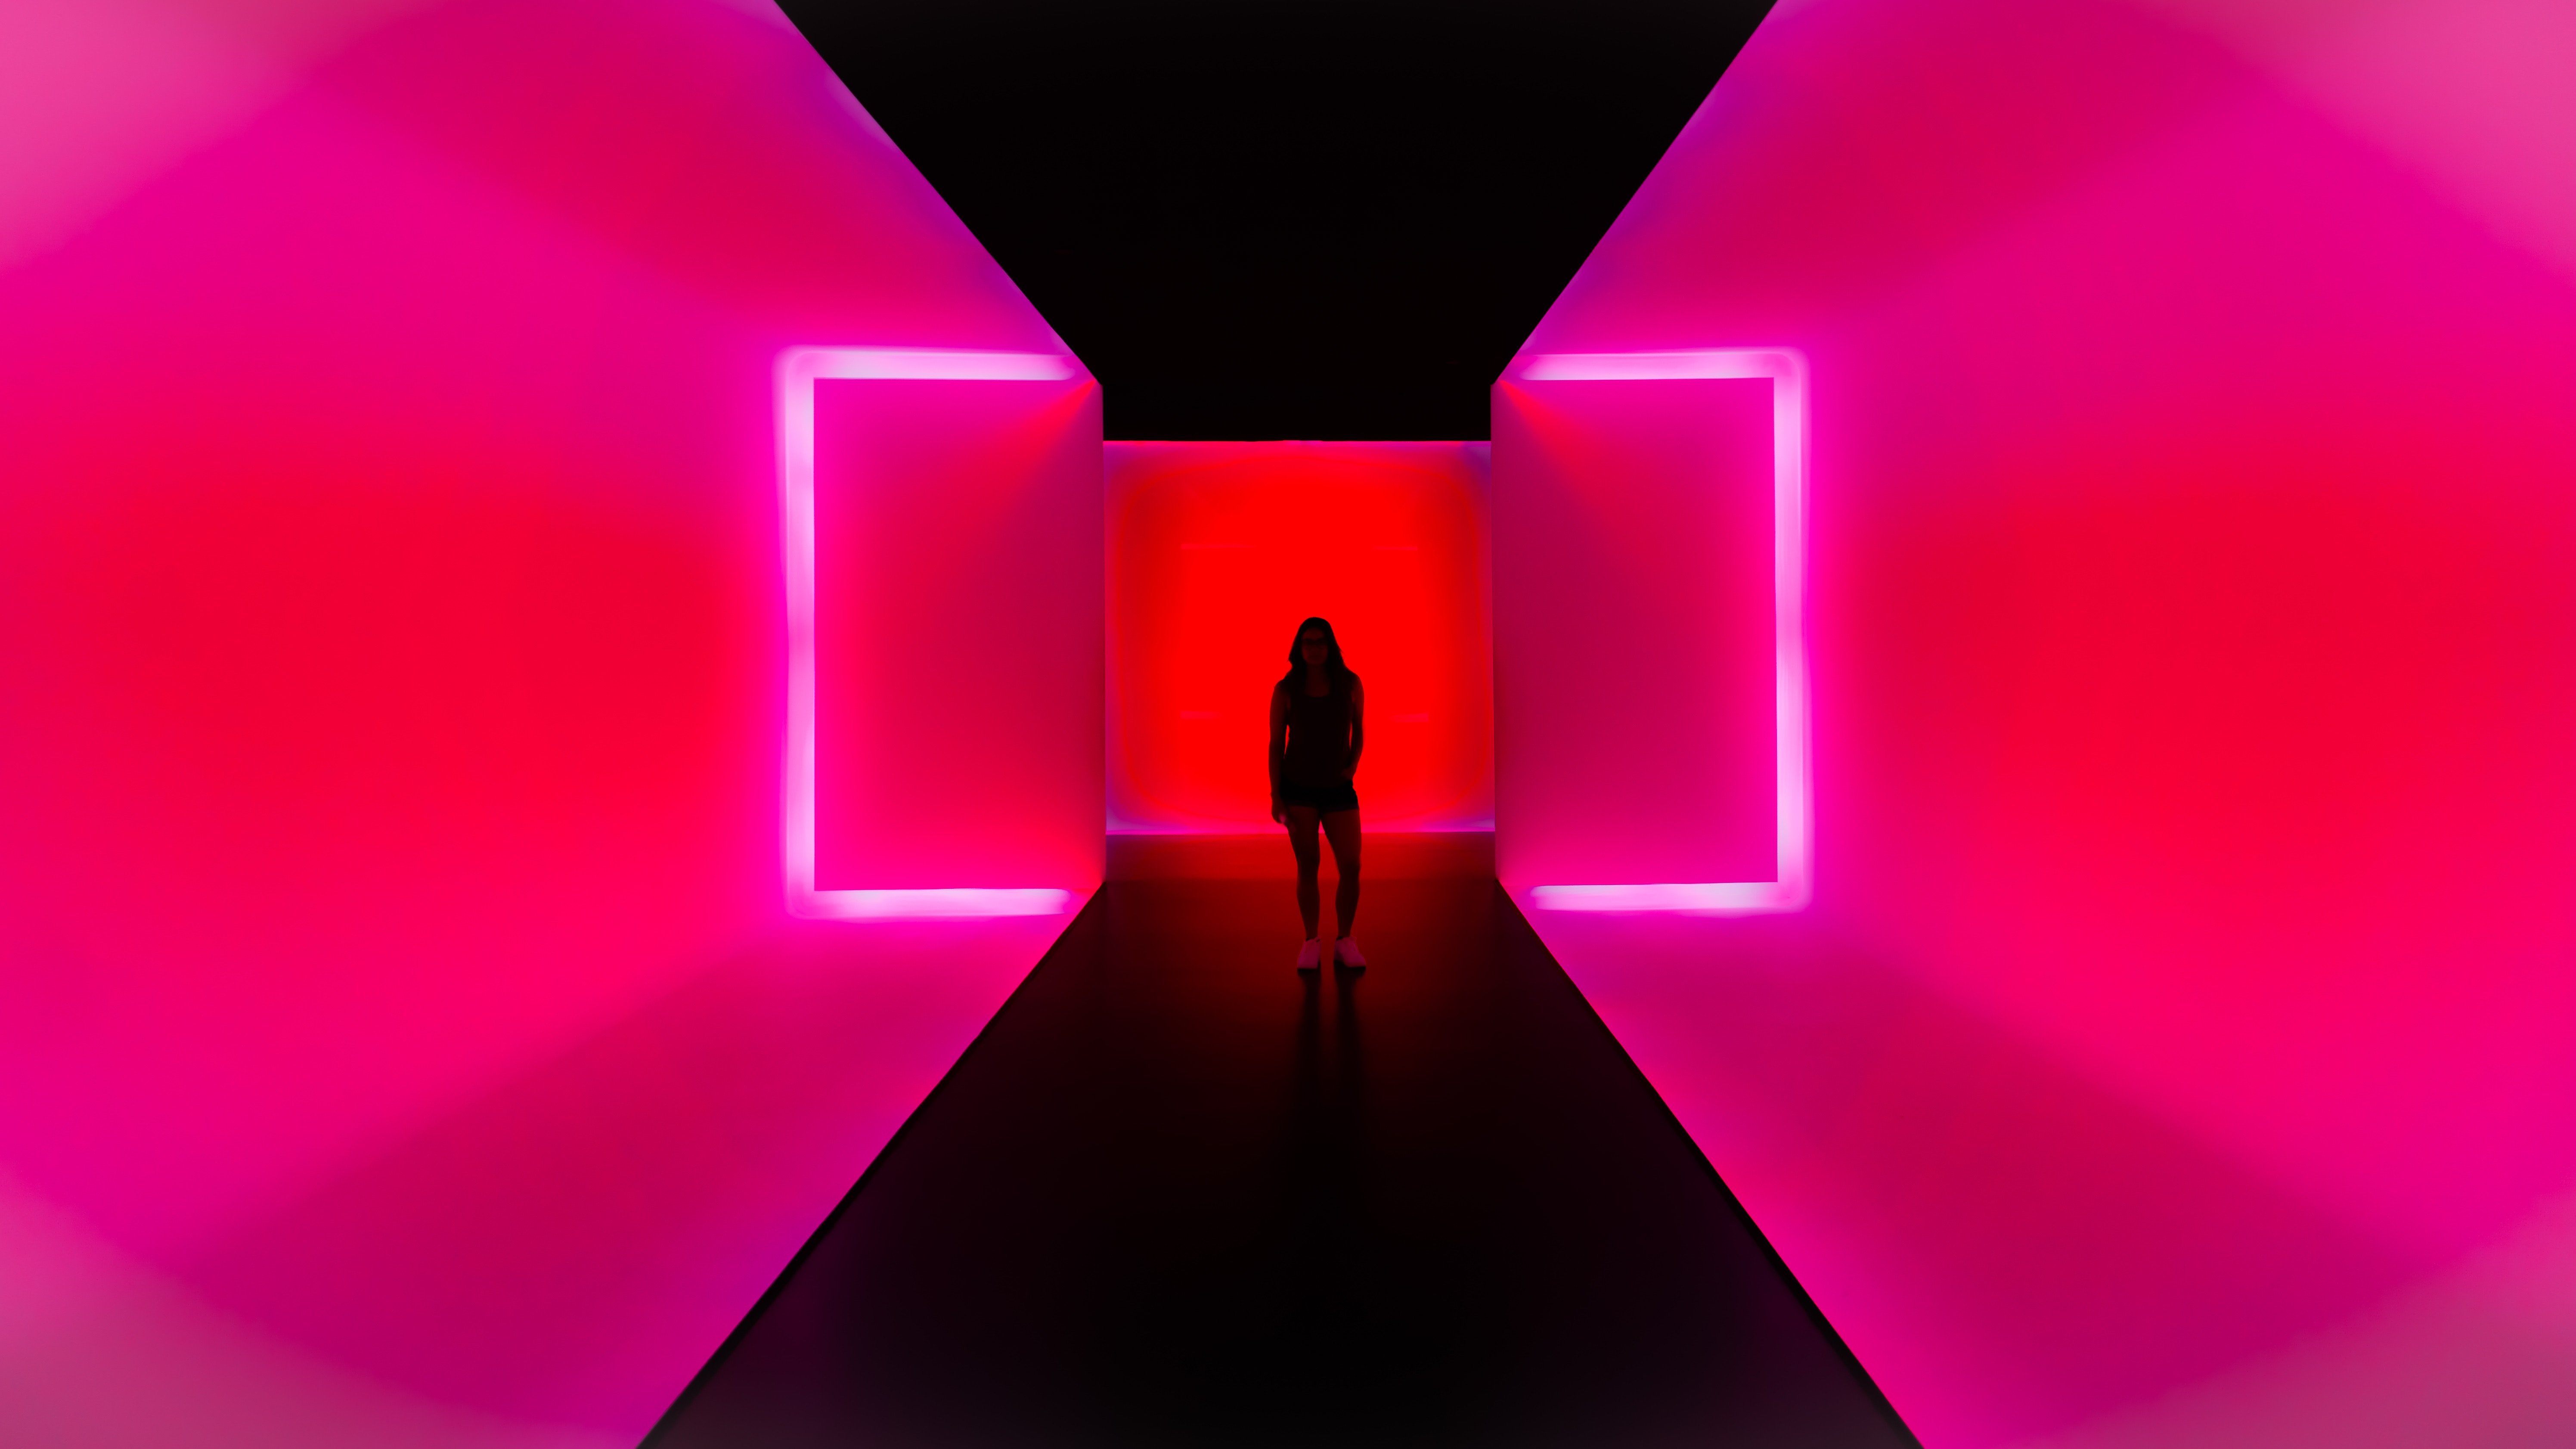 girl standing in pink room